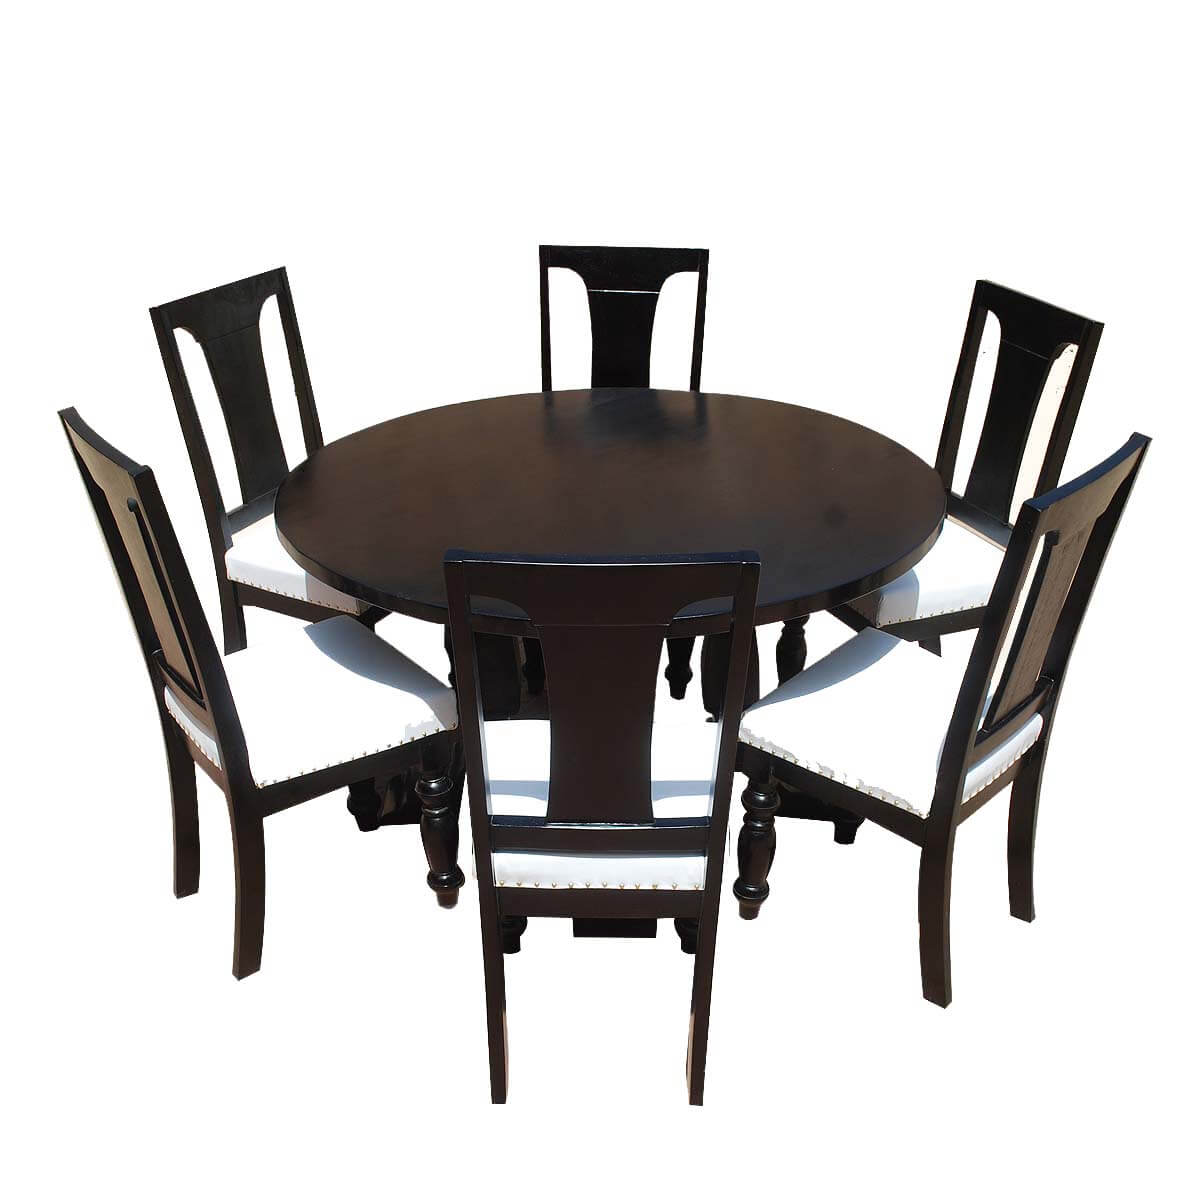 California solid wood leather 7p round dining room set for Solid wood round tables dining